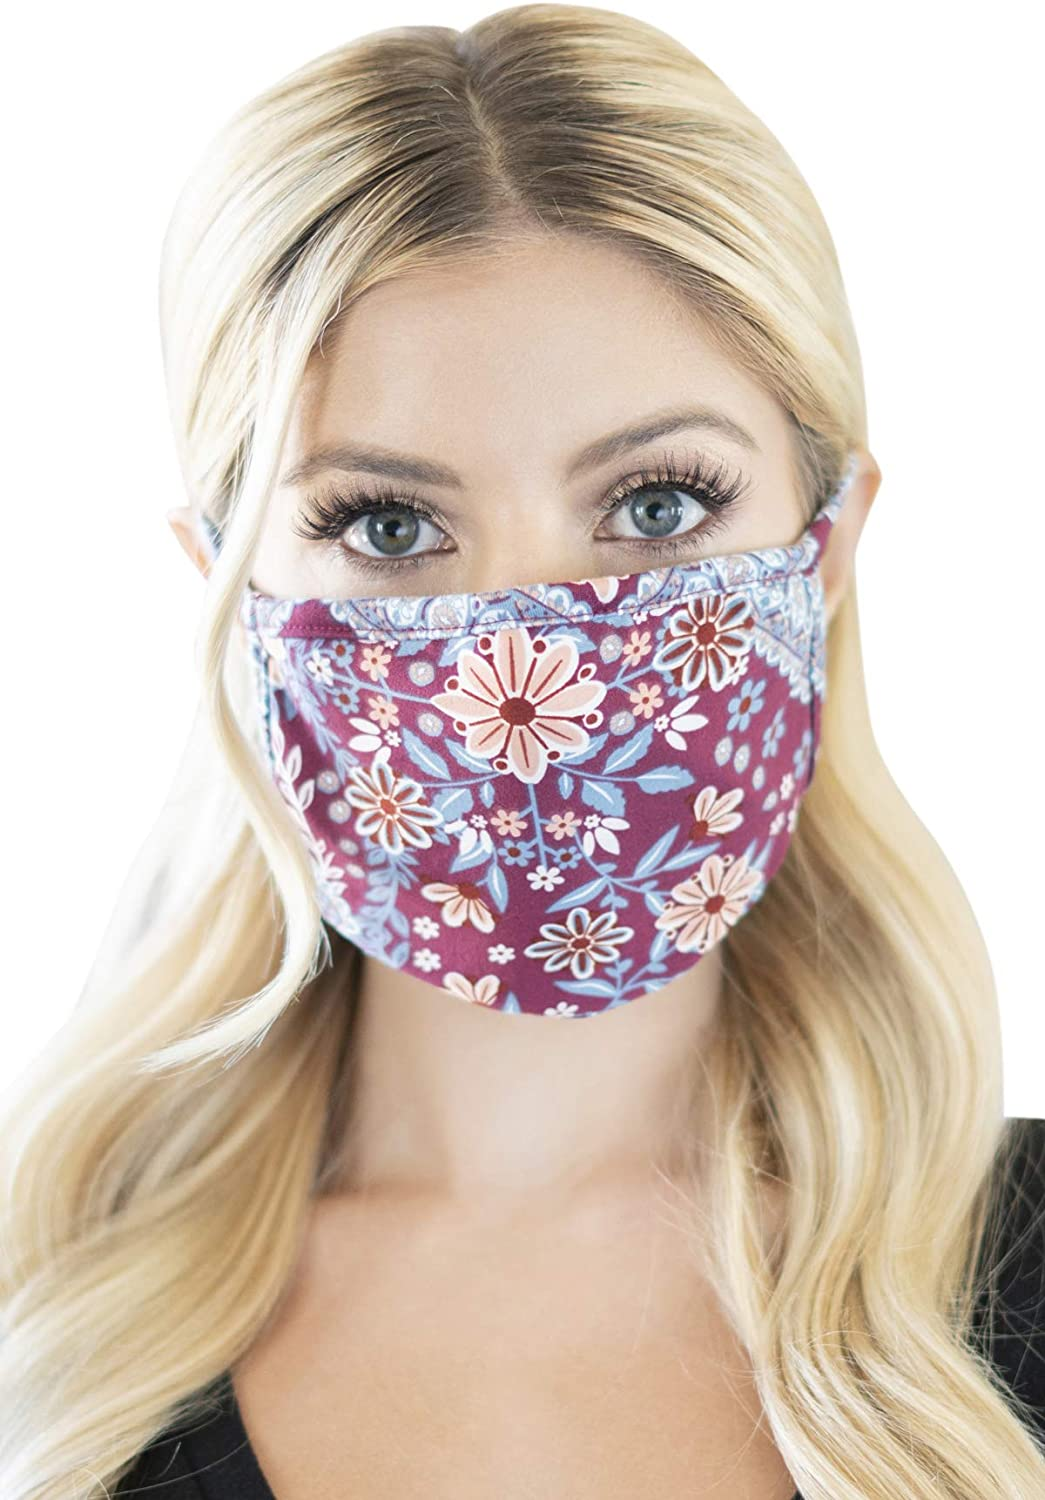 Reusable Fabric Face Mask Round Covering Filter Insertable Pocket Unisex - Washable Breathable Print Cloth Mouth Shield Protection Comfy Men Women (Filter Pocket/Round - Paisley Floral Burgundy)